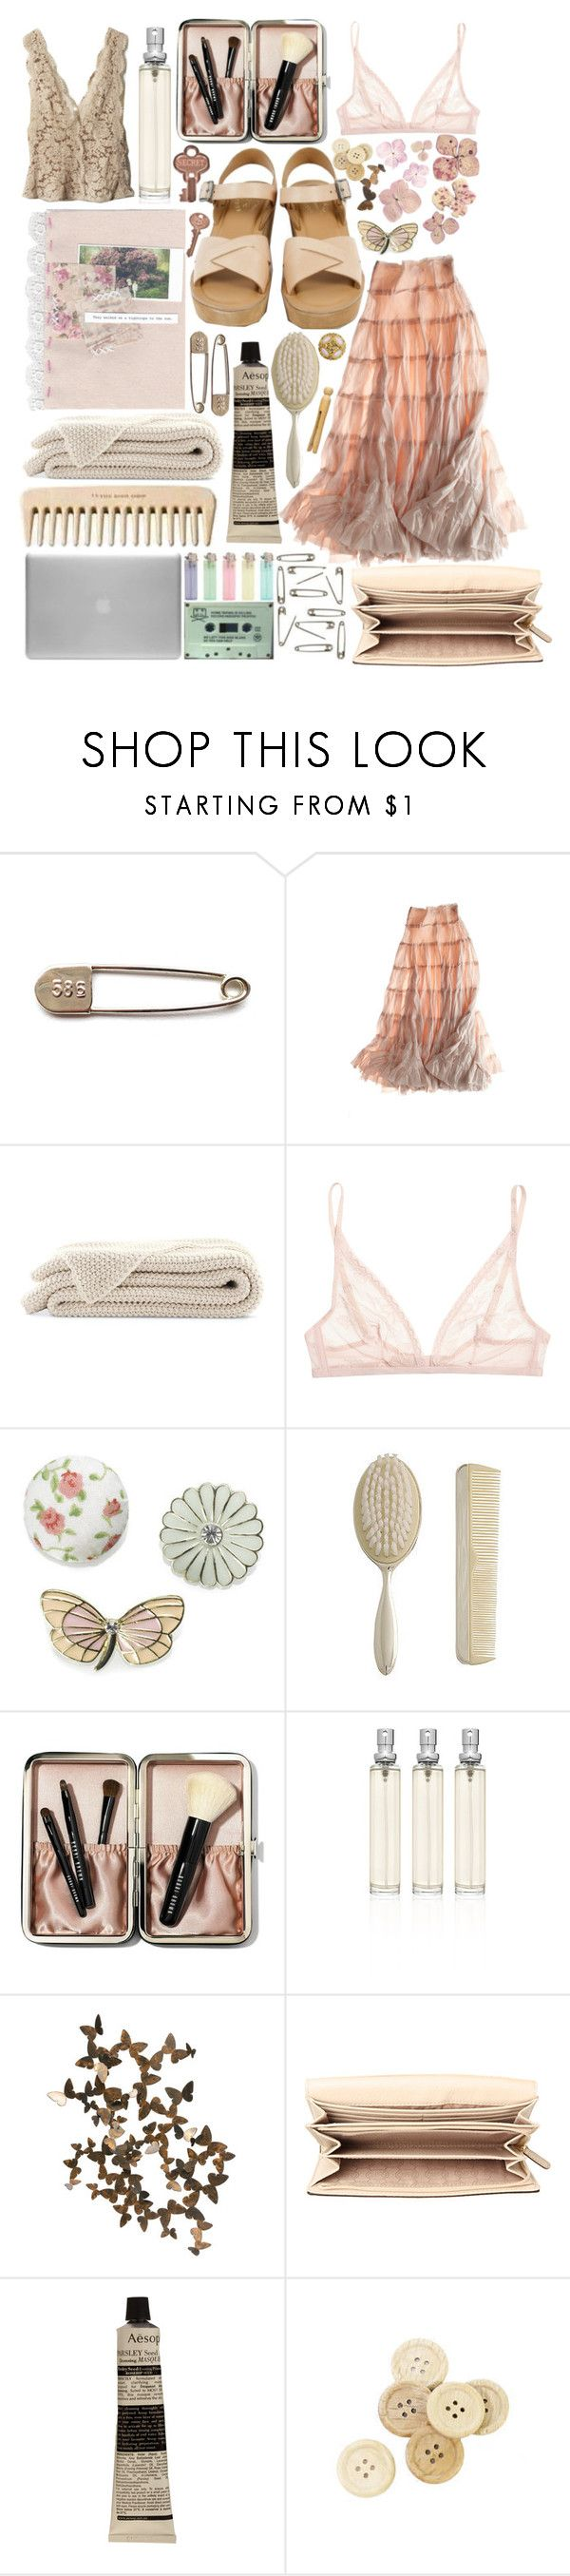 """""""Would you stay if she promised you heaven?"""" by hougach ❤ liked on Polyvore featuring Kork-Ease, Calypso St. Barth, STELLA McCARTNEY, Calvin Klein Underwear, Monsoon, Zara, Bobbi Brown Cosmetics, Alchemy Collection, MICHAEL Michael Kors and Aesop"""